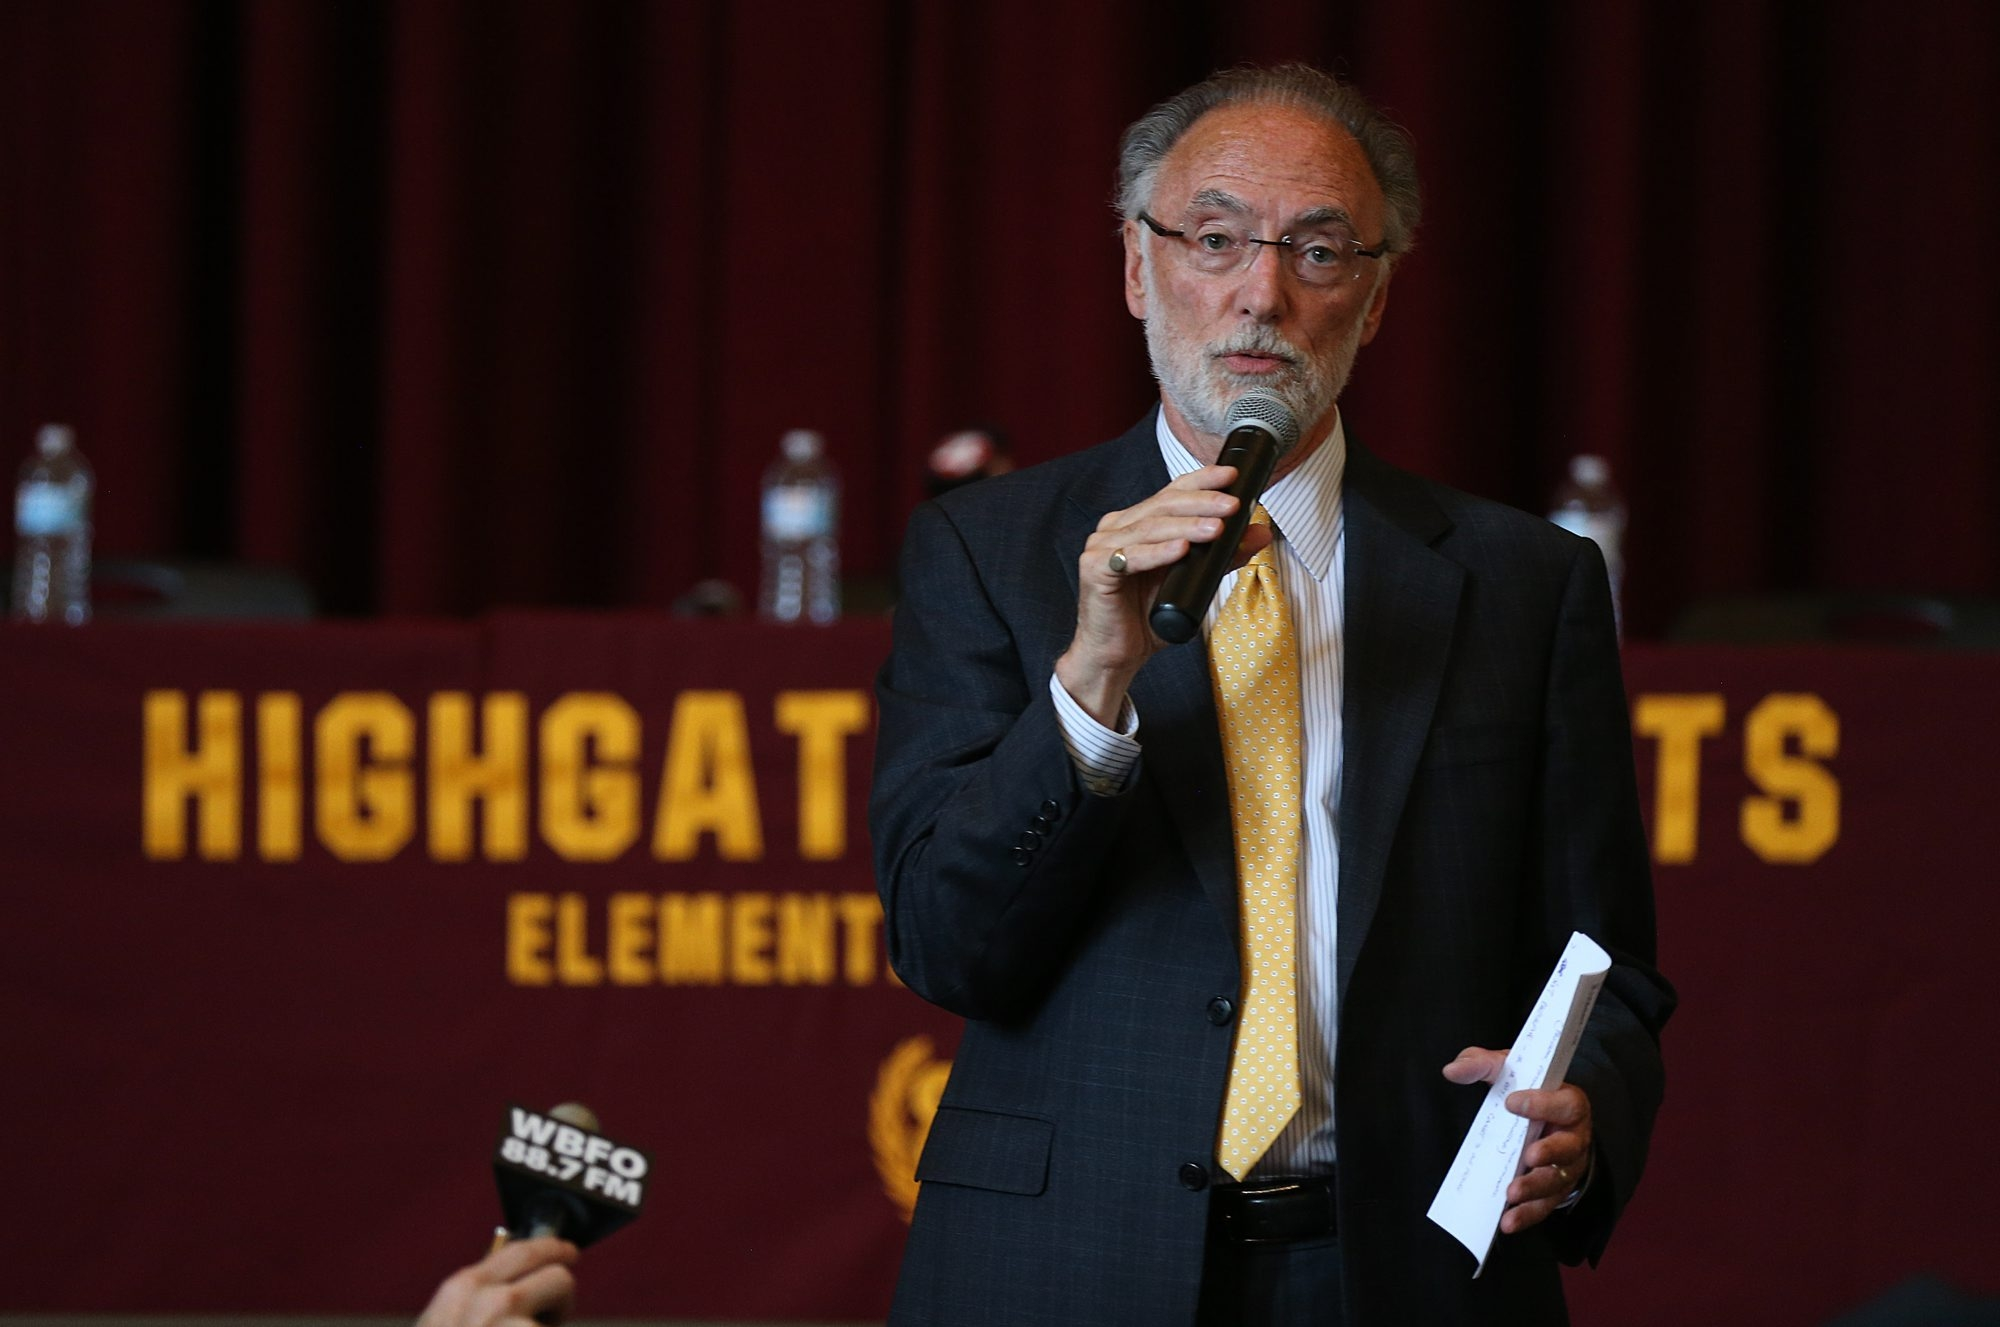 Buffalo School District Interim Superintendent Donald A. Ogilvie speaks to the audience at the start of a meeting with the public last week in Highgate Heights Elementary School in Buffalo.